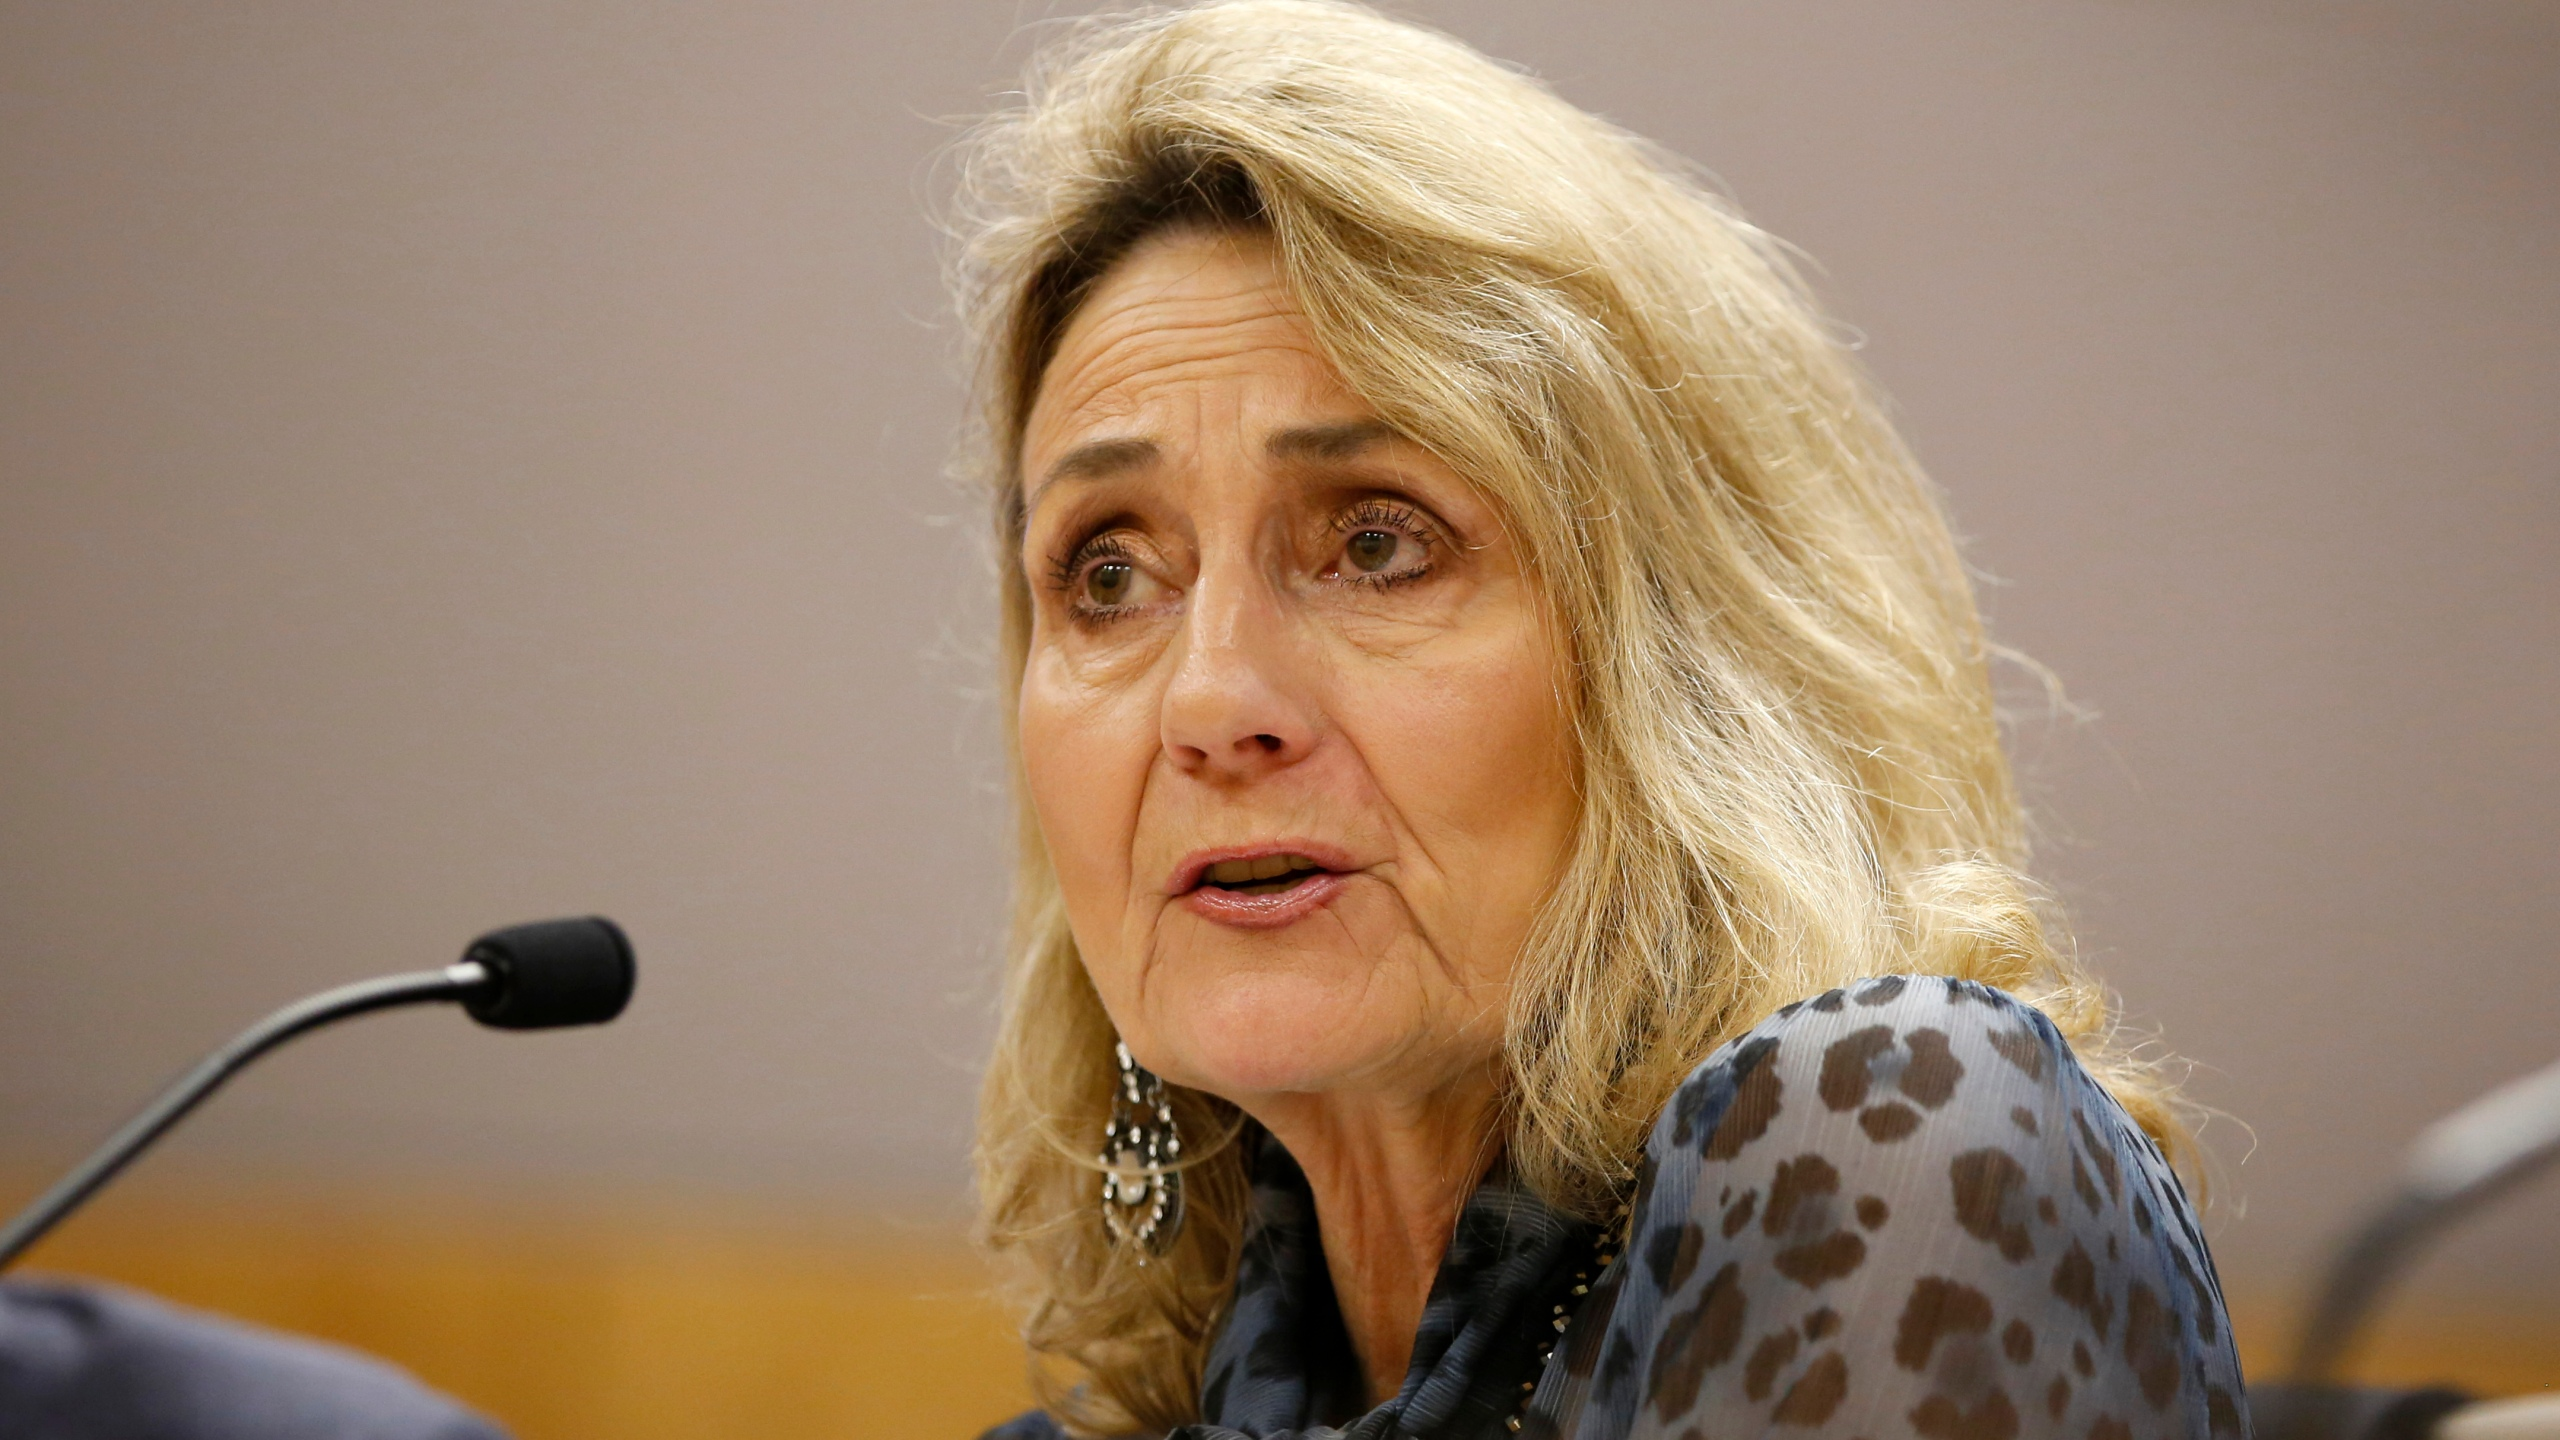 In this Jan. 8, 2020, file photo is Marybel Batjer, president of the California Public Utilities Commission, appears before a state Senate committee hearing in Sacramento, Calif. (AP Photo/Rich Pedroncelli, File)